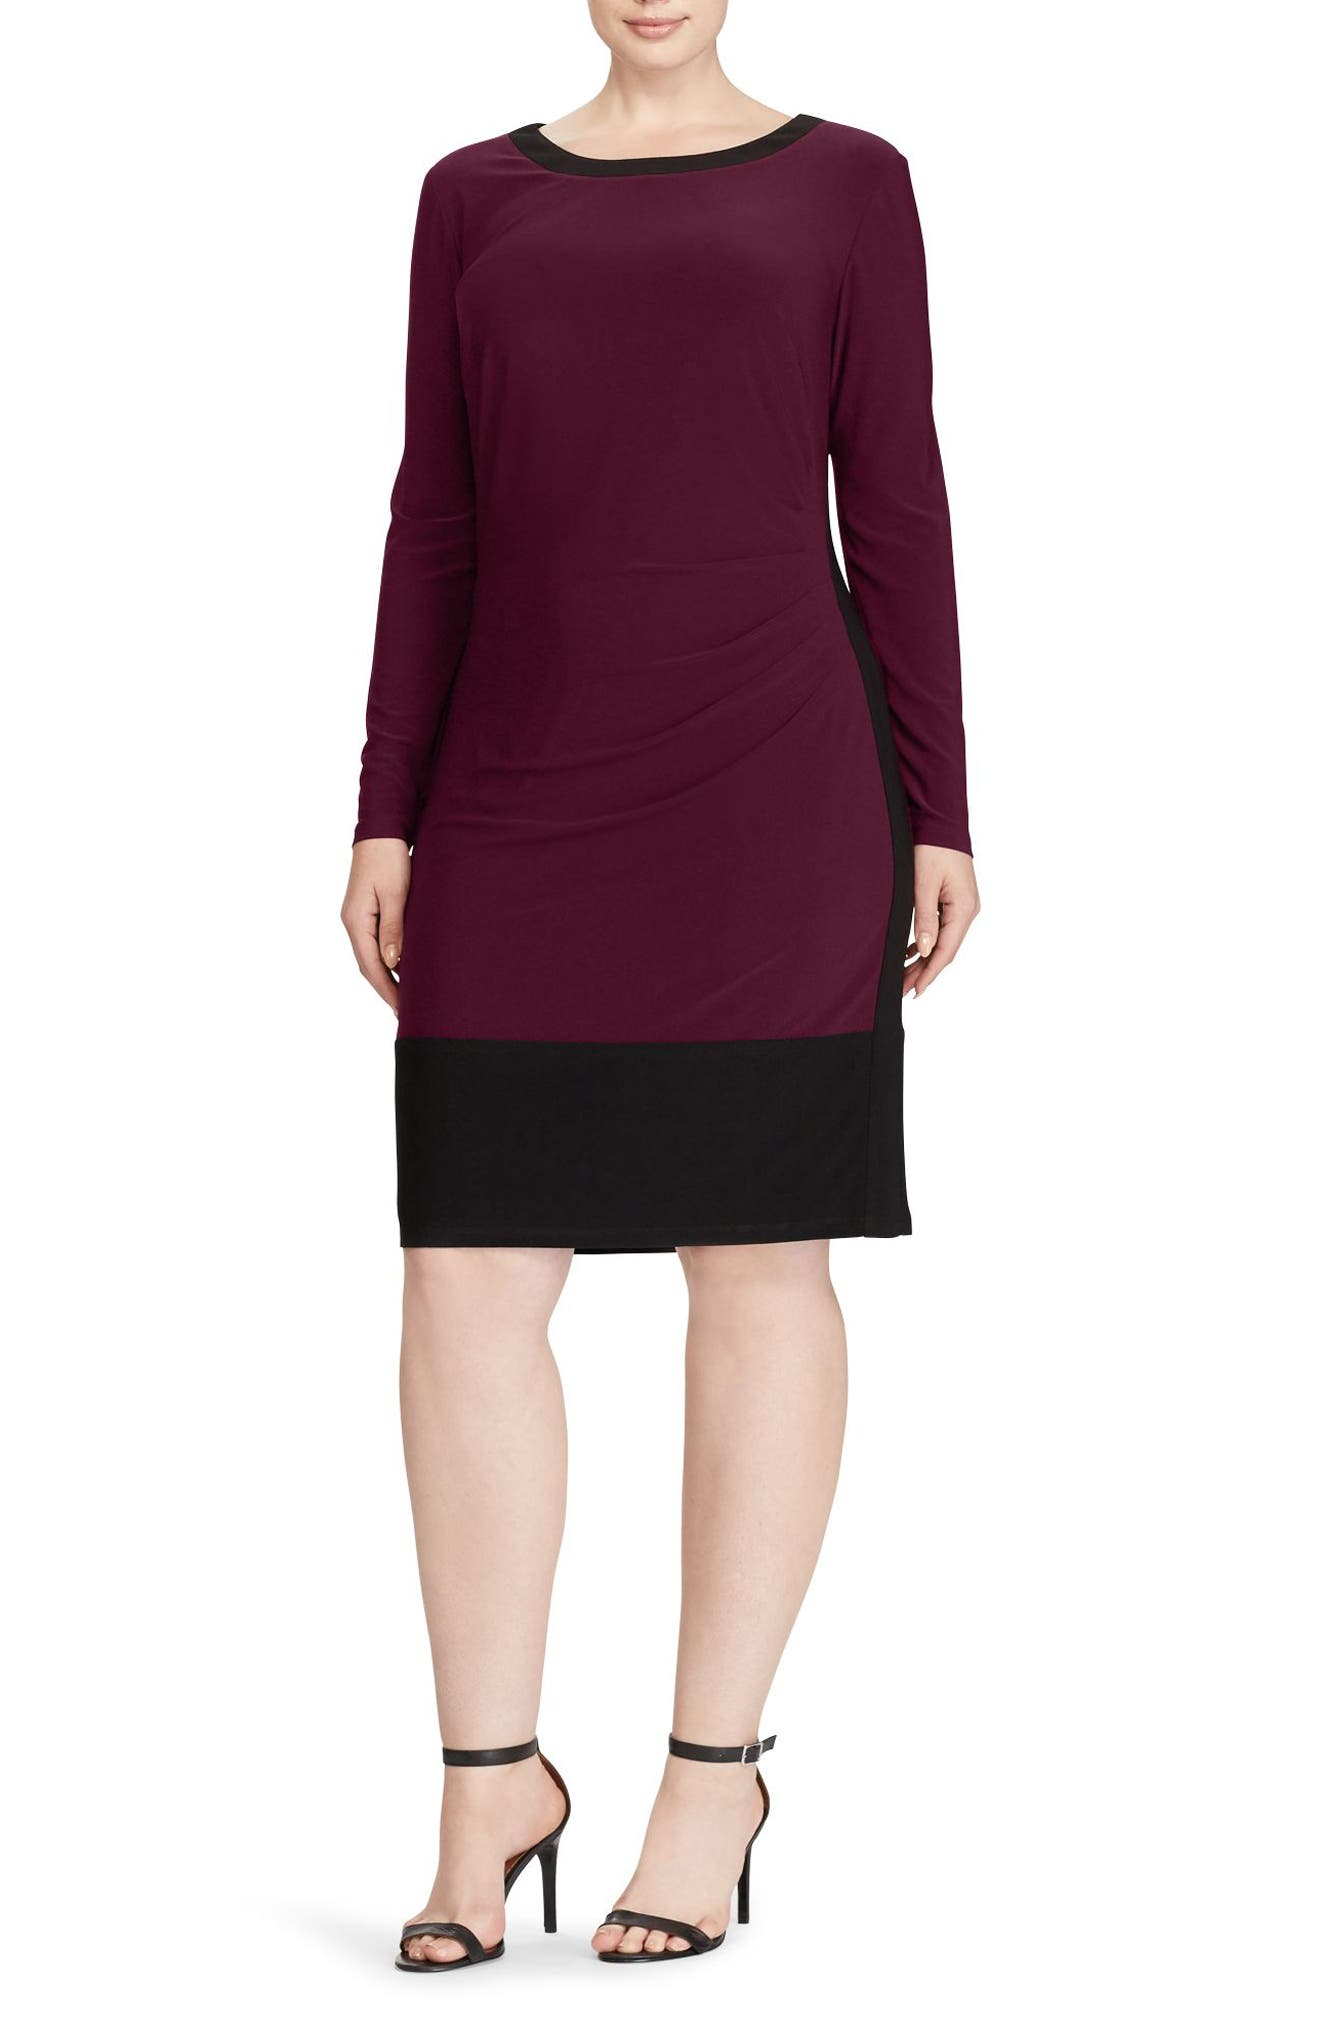 Lauren Ralph Lauren Colorblock Sheath Dress (Plus Size)